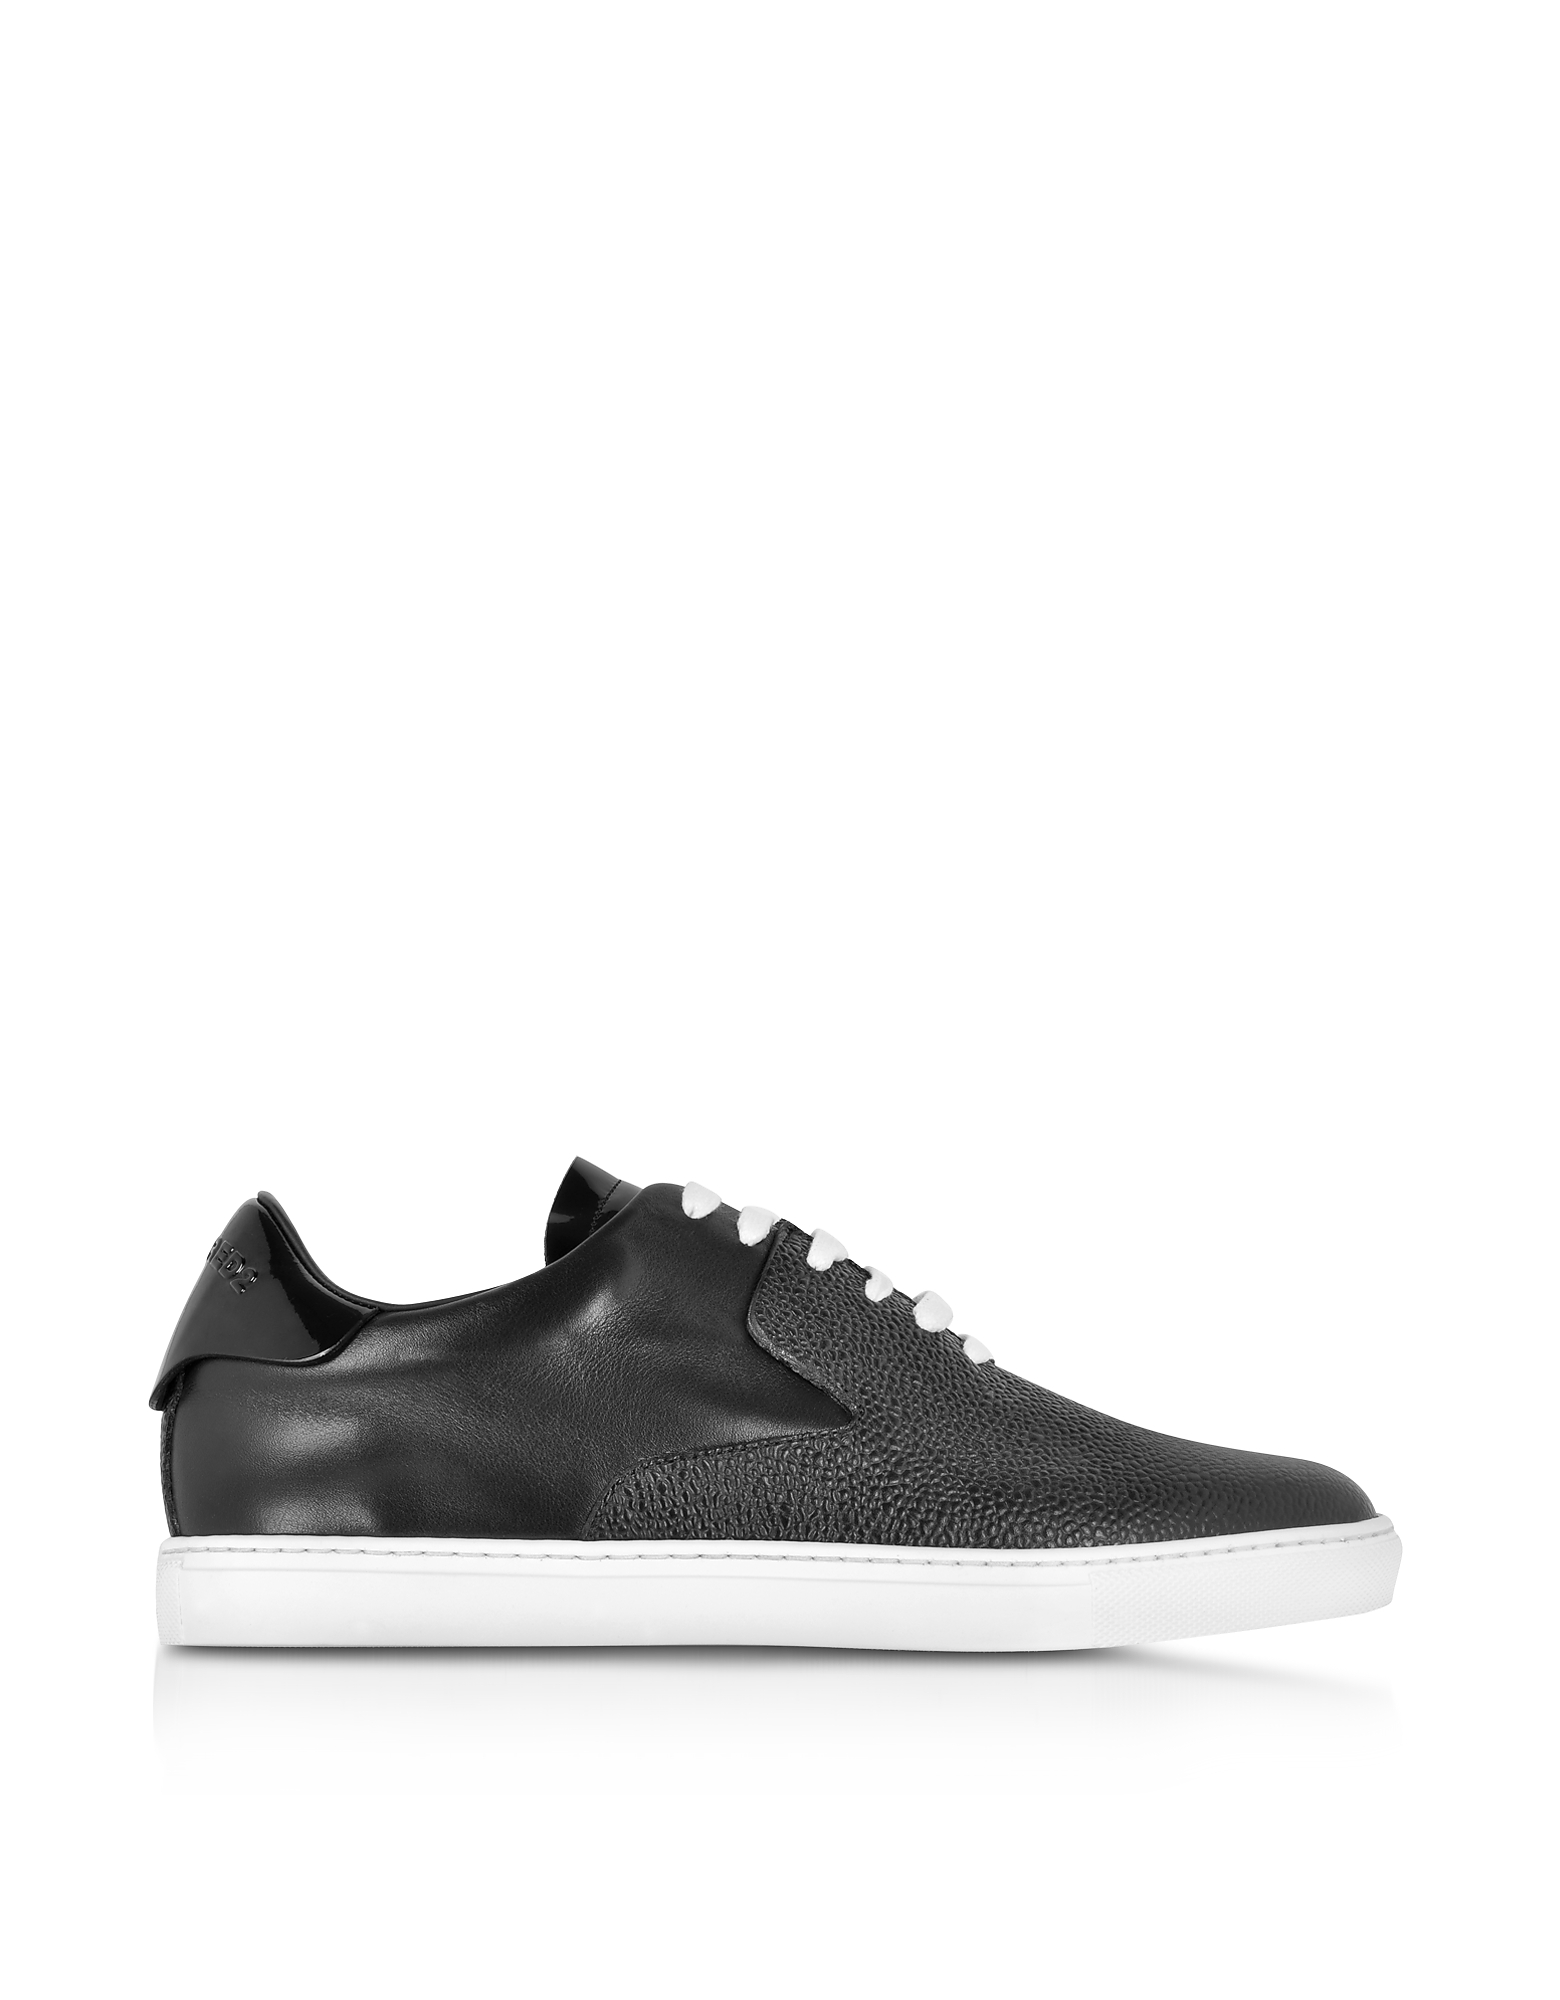 DSquared2 Shoes, Tux Black Leather Sneaker